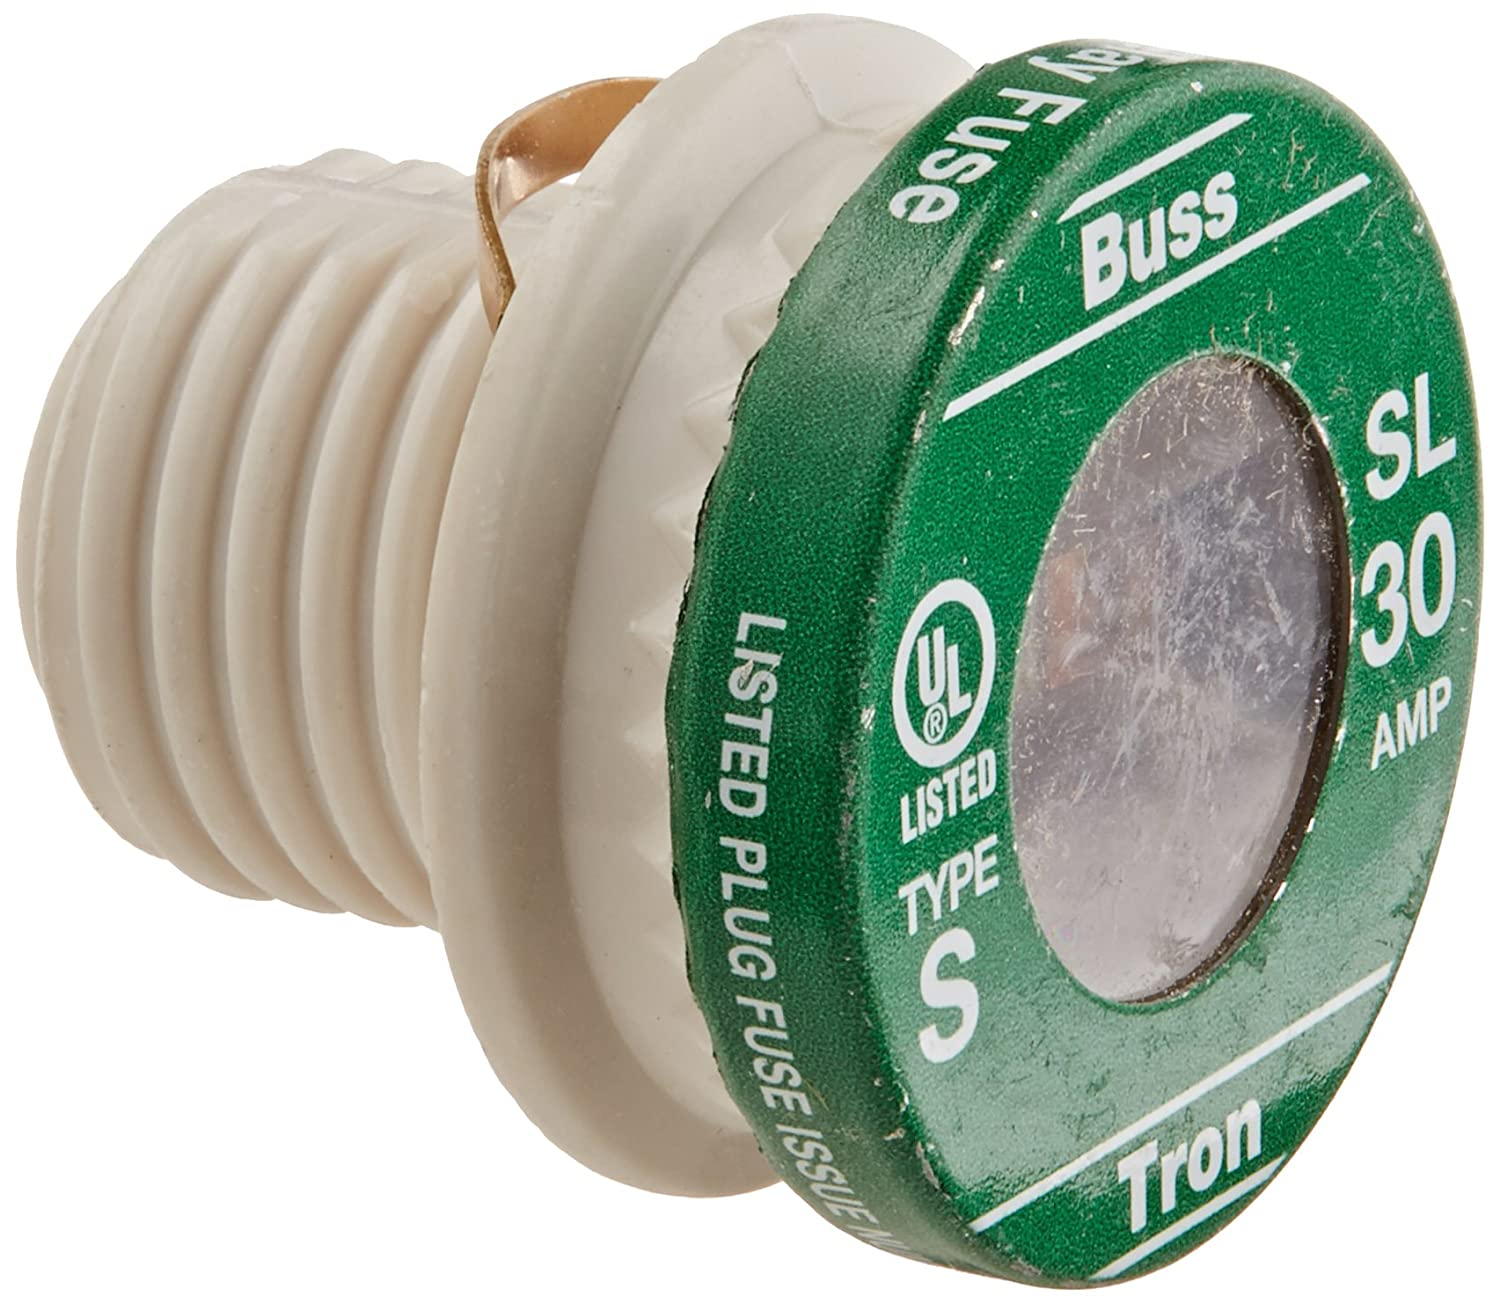 Mersen GSL30 security S Type Rejection Time-Delay 125VAC Fuse High quality new UL 1 Plug